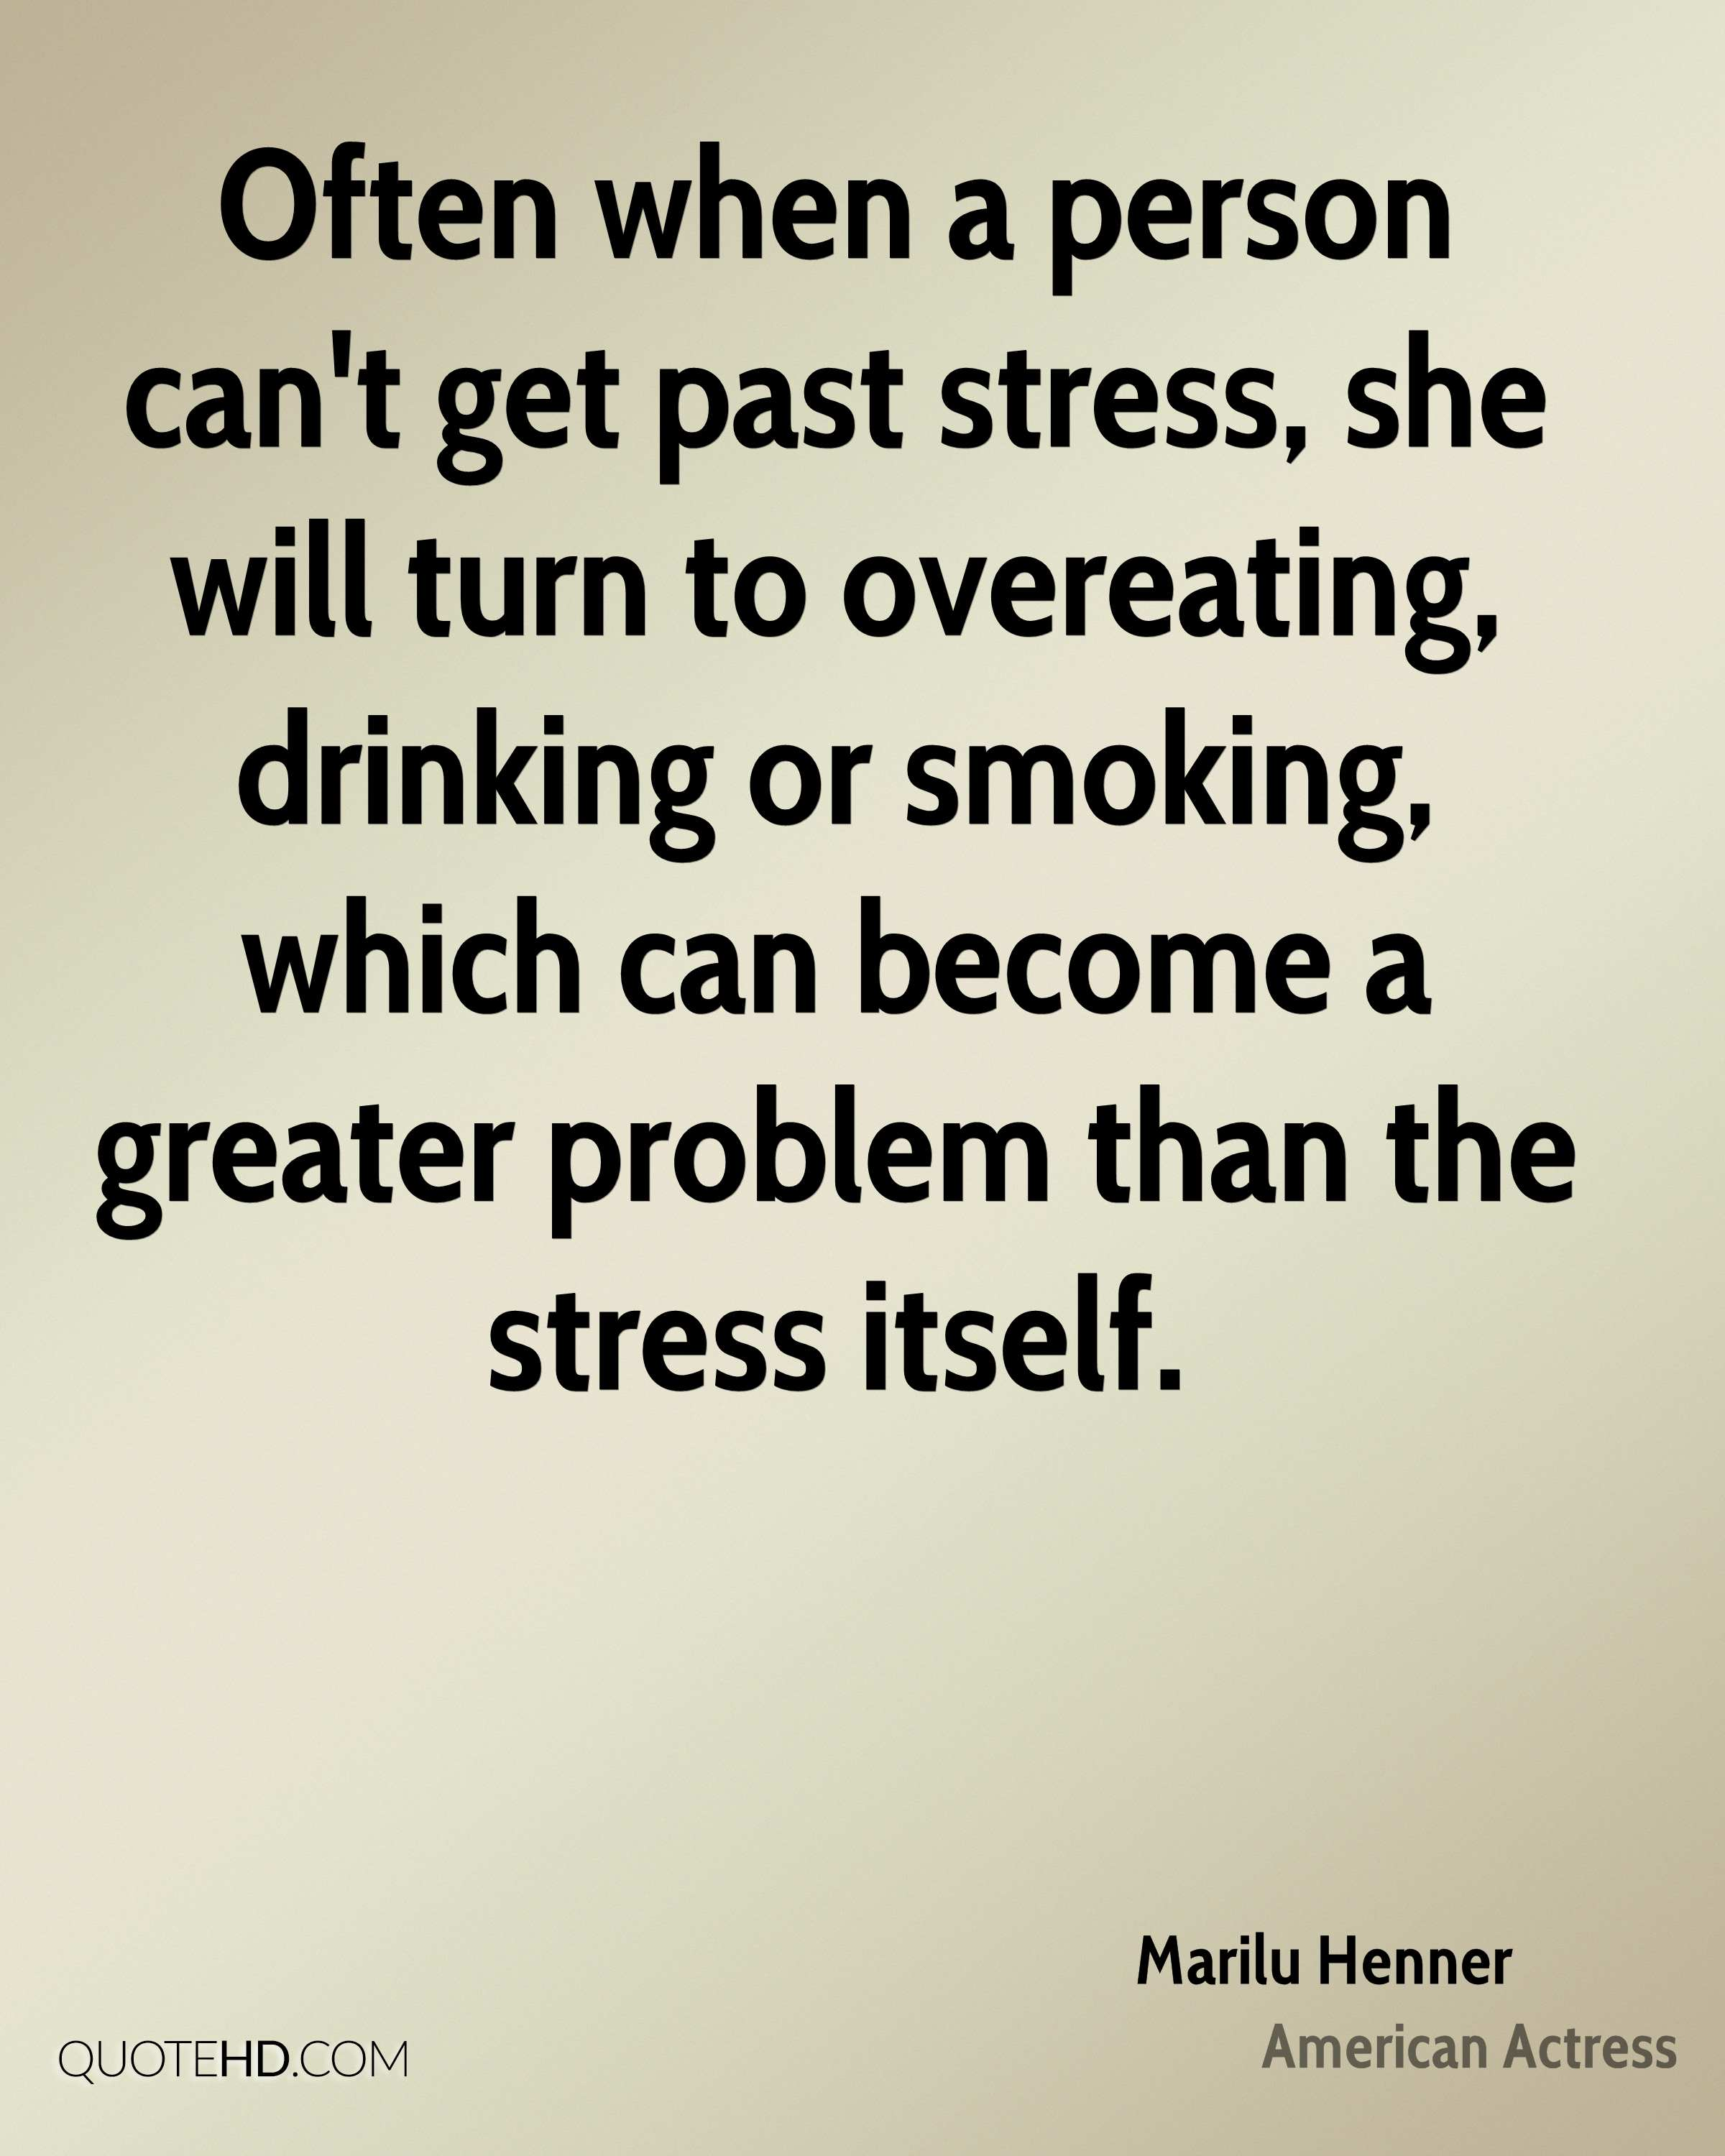 Often when a person can't get past stress, she will turn to overeating, drinking or smoking, which can become a greater problem than the stress itself.